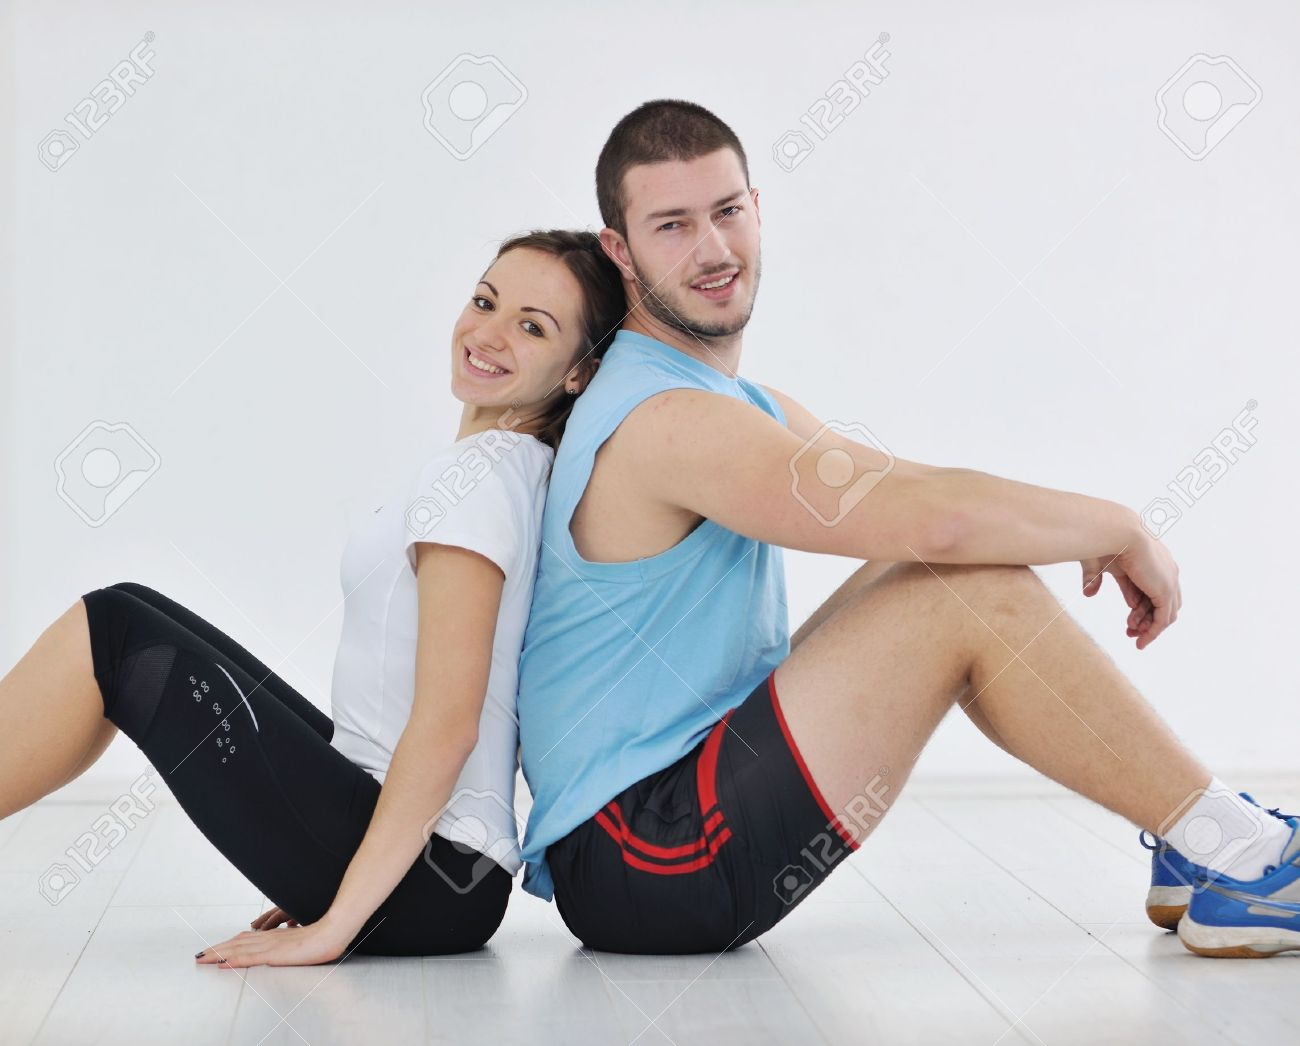 happy young couple fitness workout and fun at sport gym club Stock Photo - 9296434